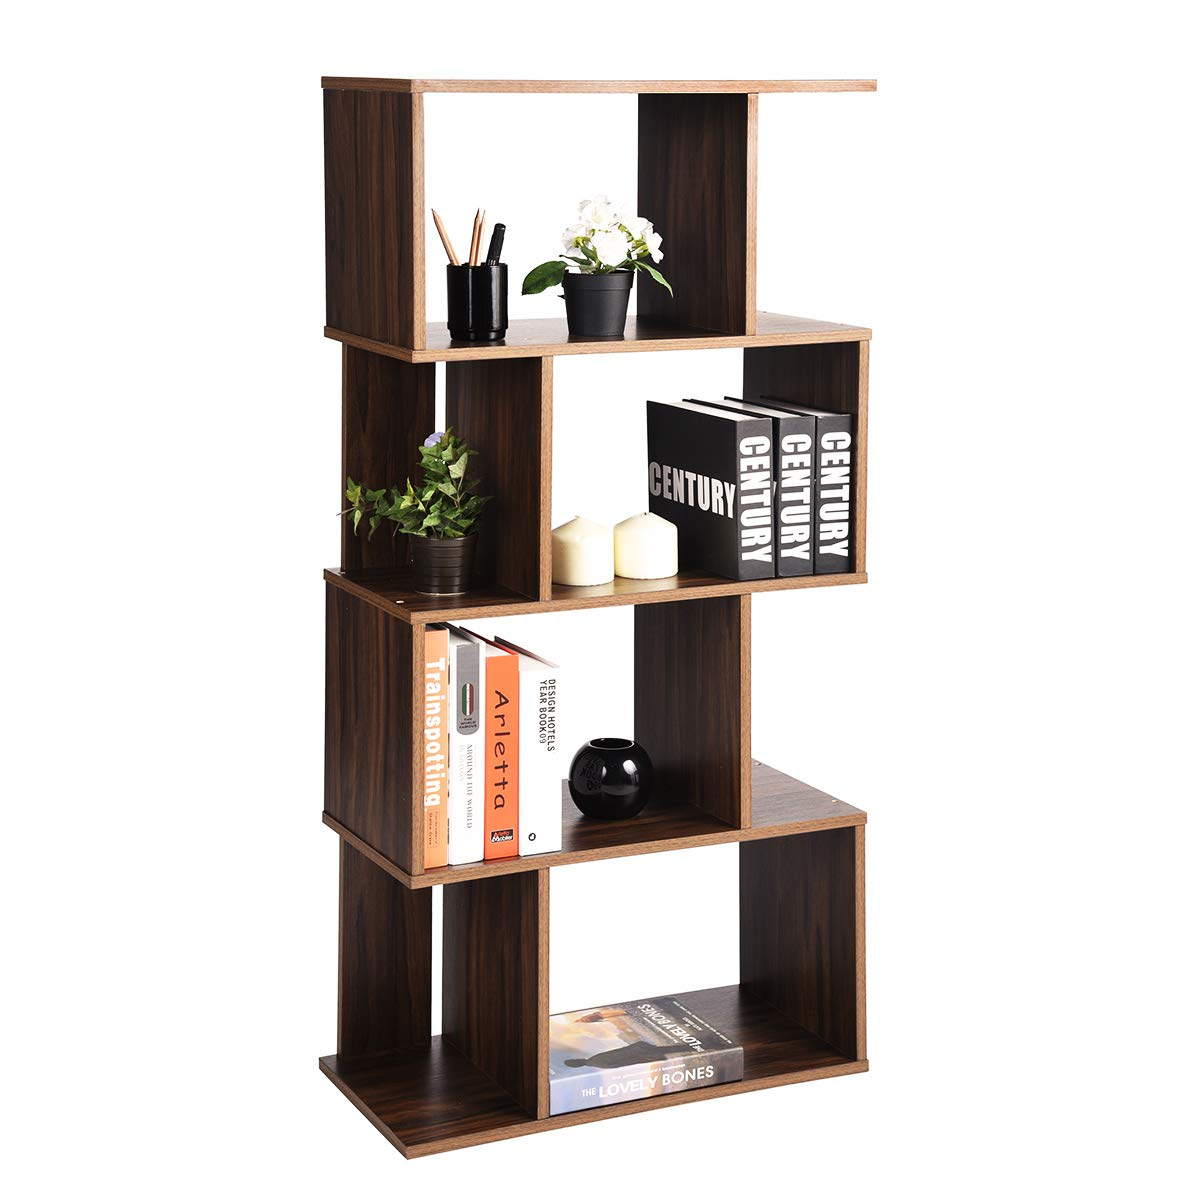 Geometric Industrial-Bookshelf Home Office-Bookcase with 8 Storage Spaces Modern Standing Storage-Shelf 2 Different Fits Organizer, Walnut